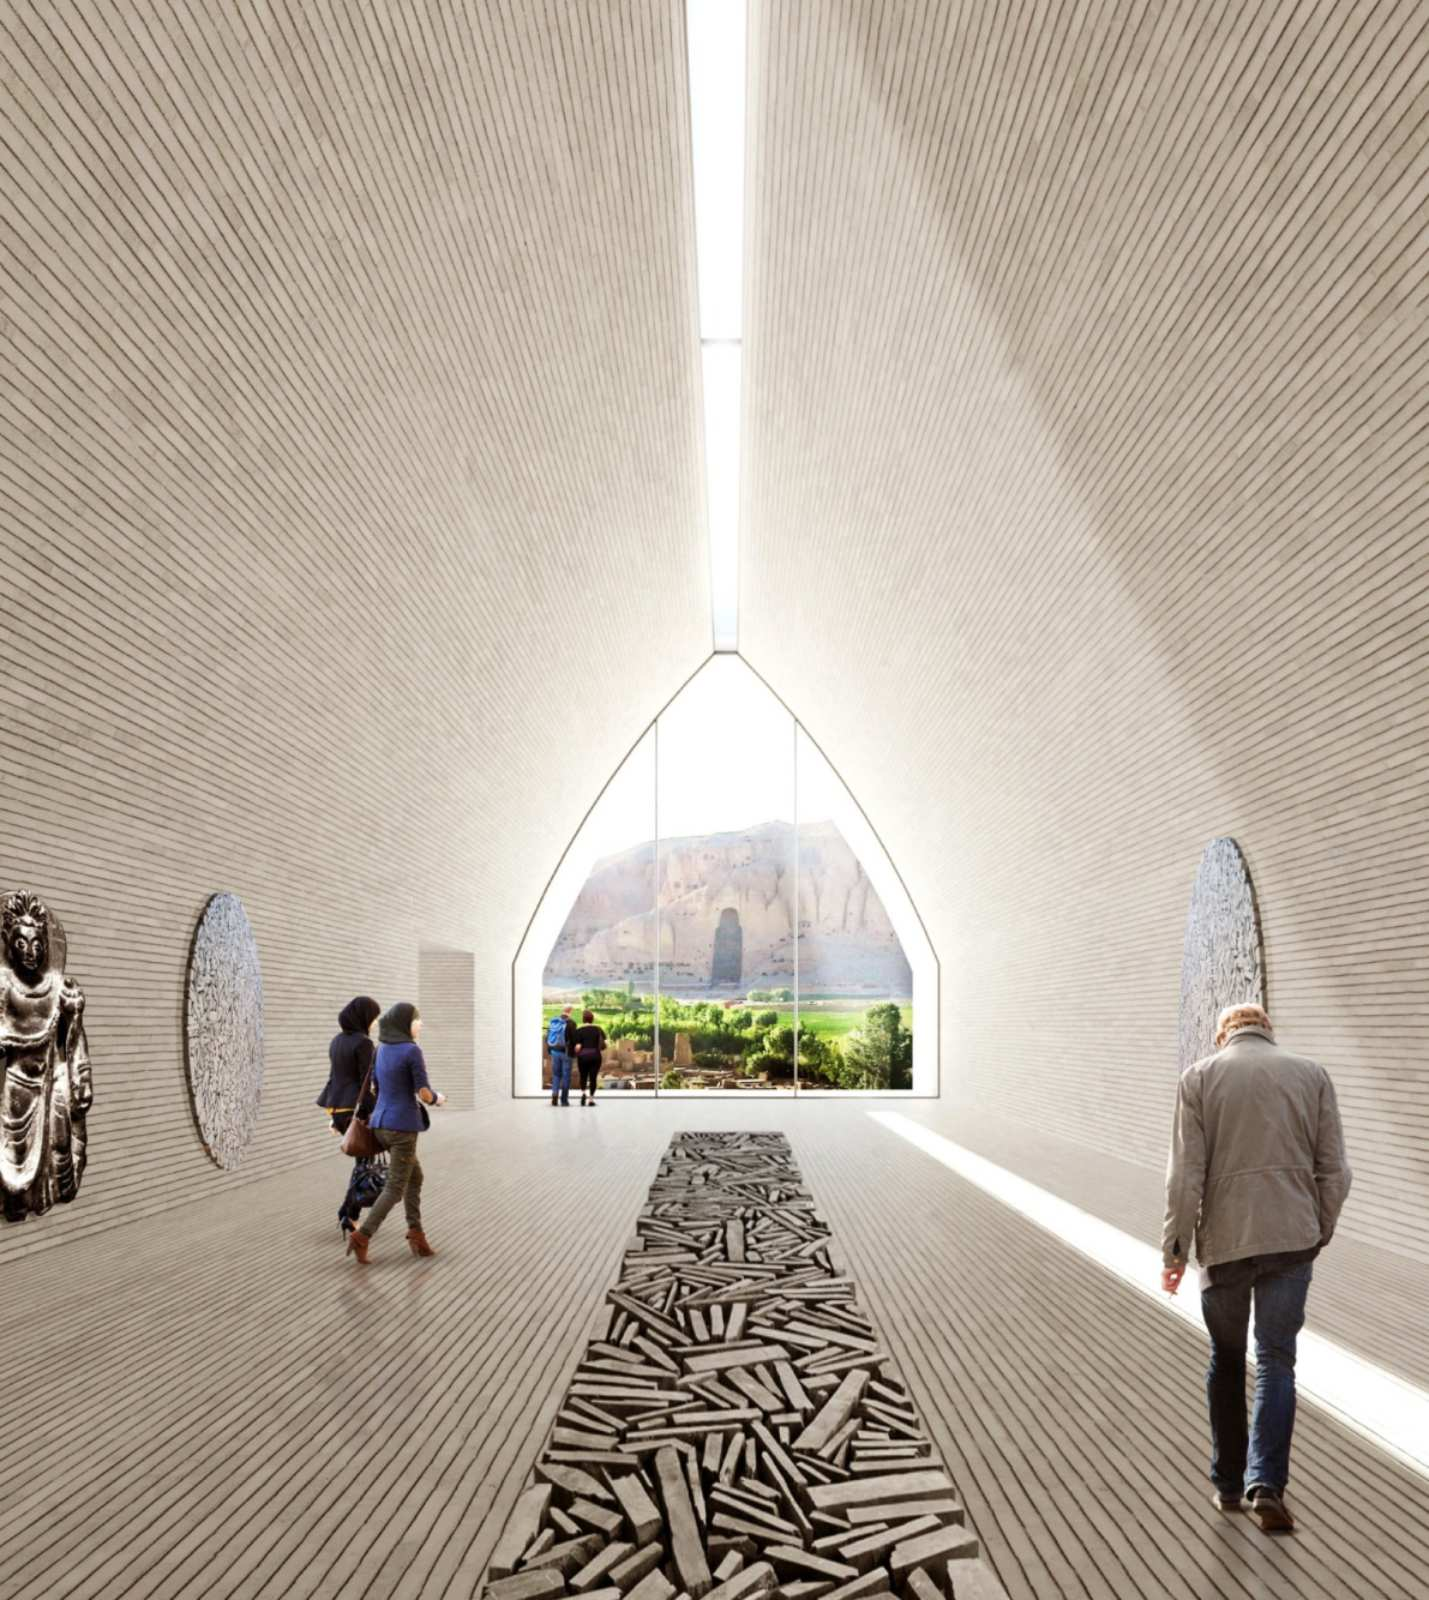 The Bamiyan Cultural Centre in Afghanistan